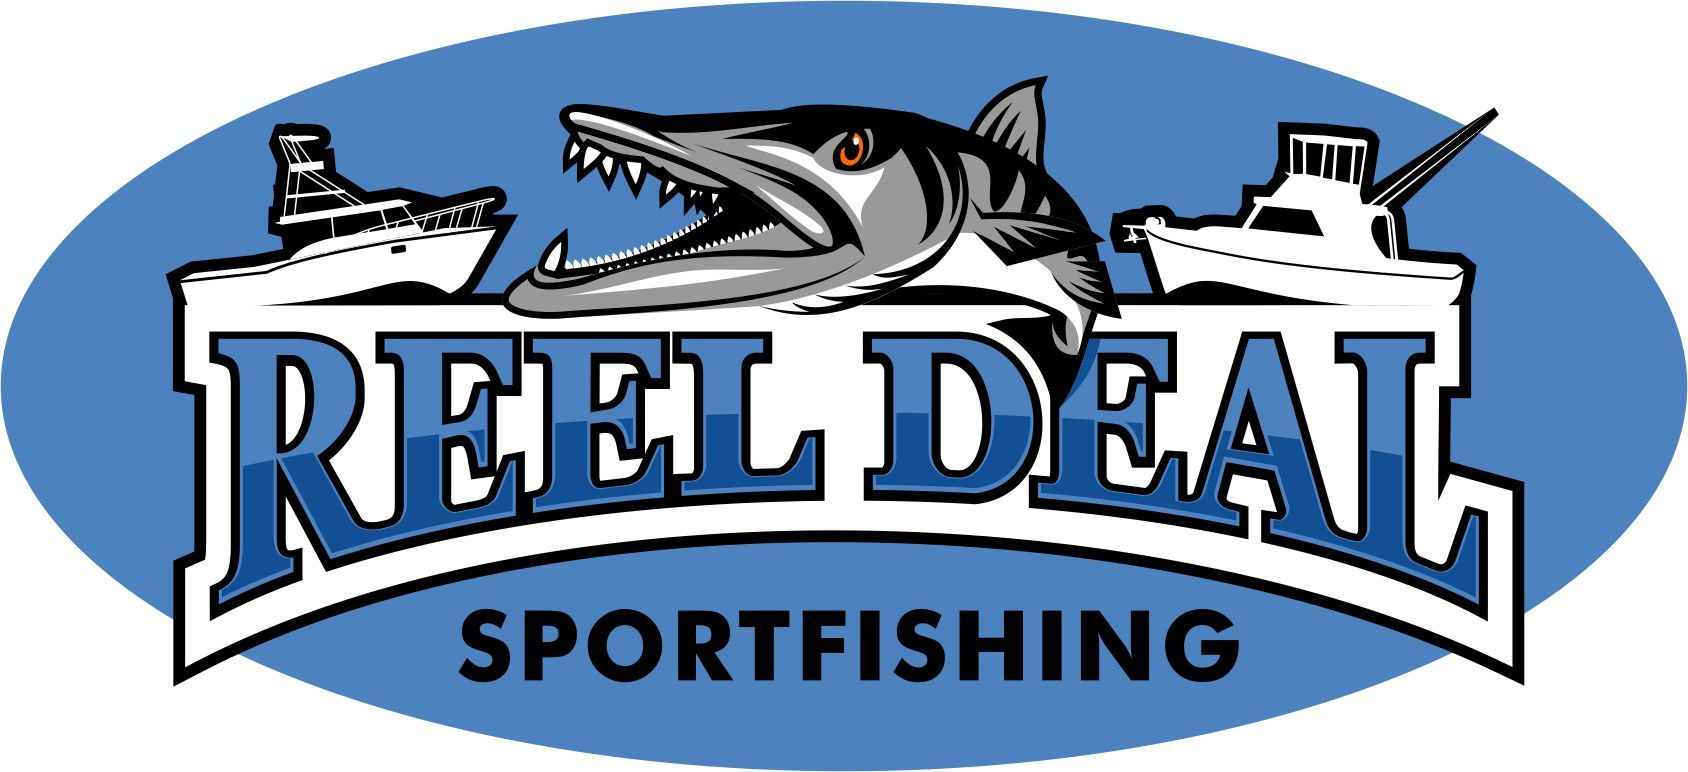 Real Deal Sportfishing